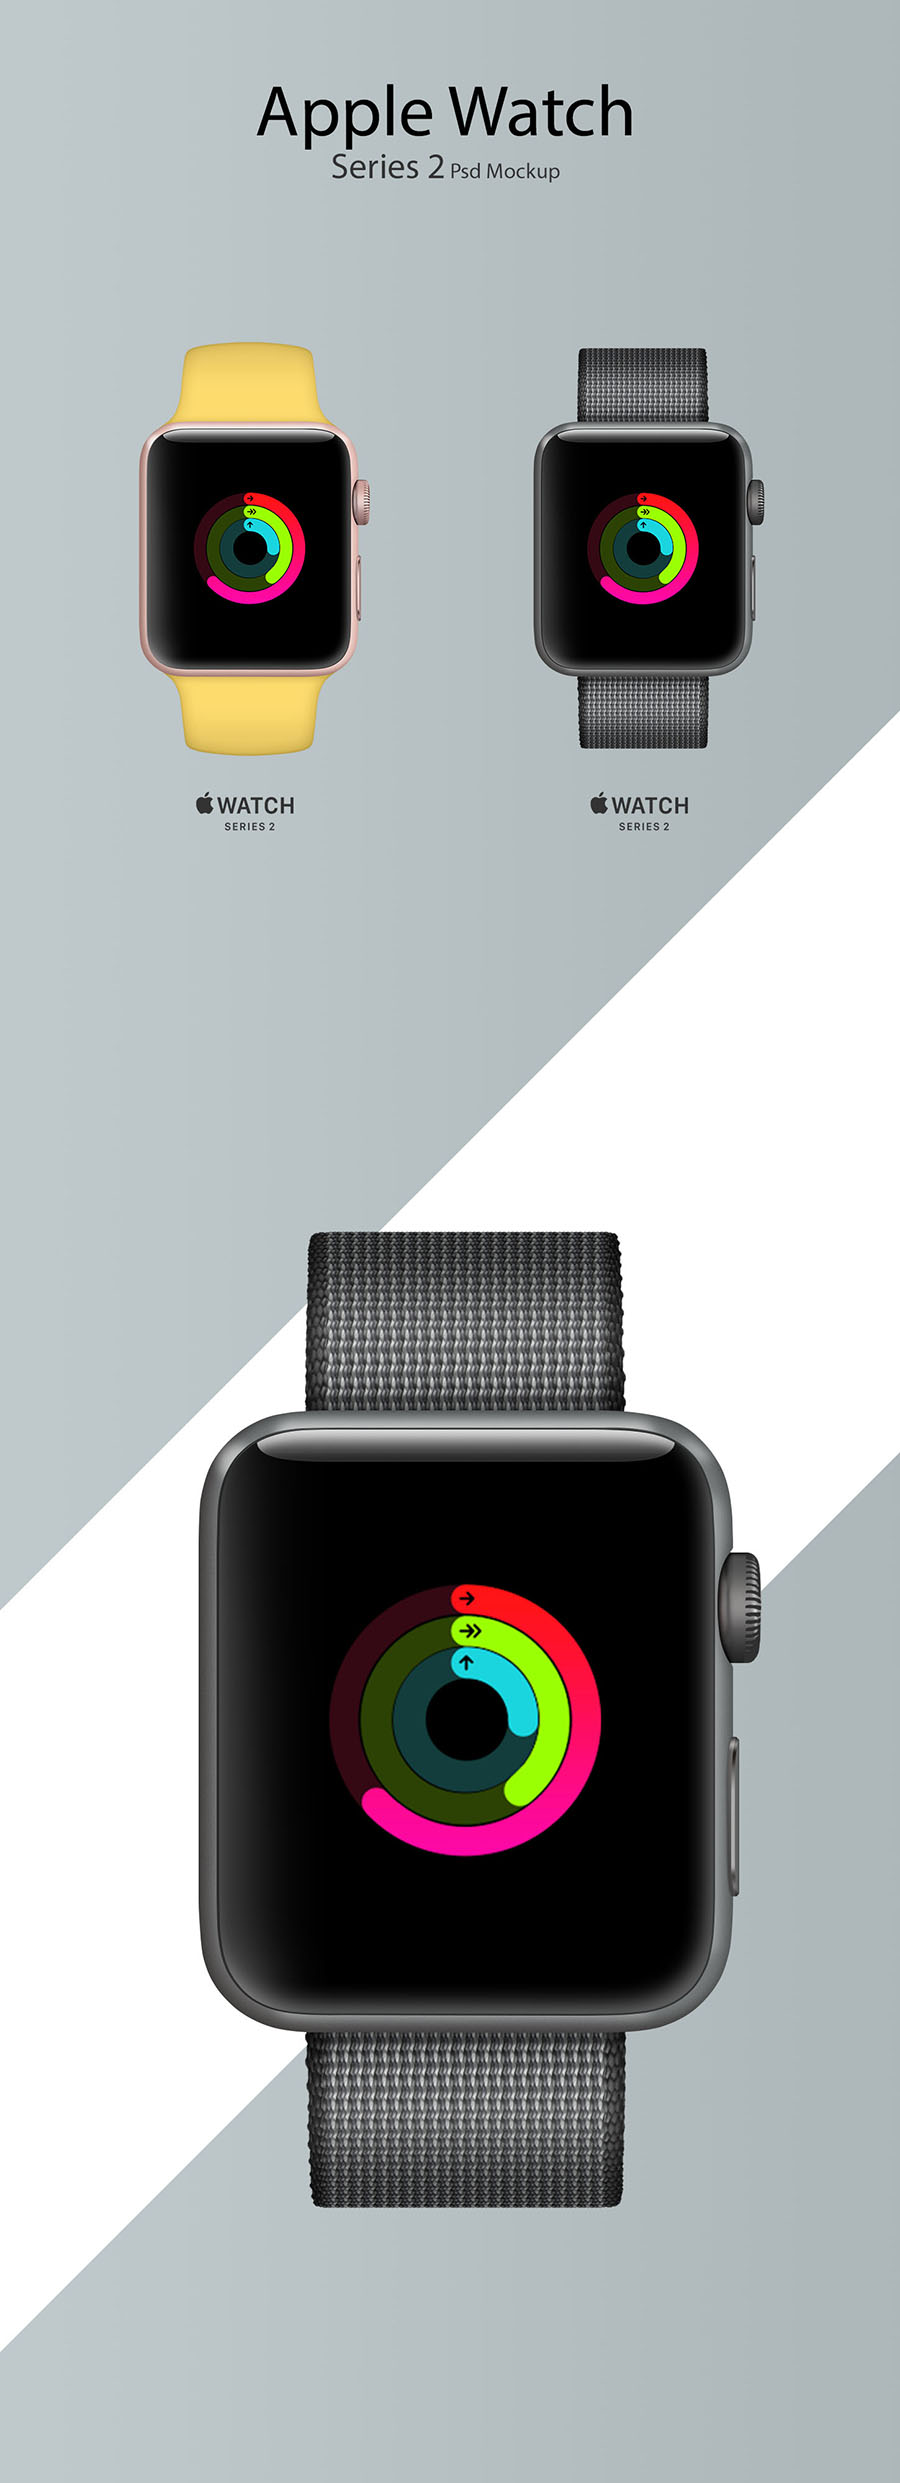 Apple Watch Series 2 PSD Mockup 下载